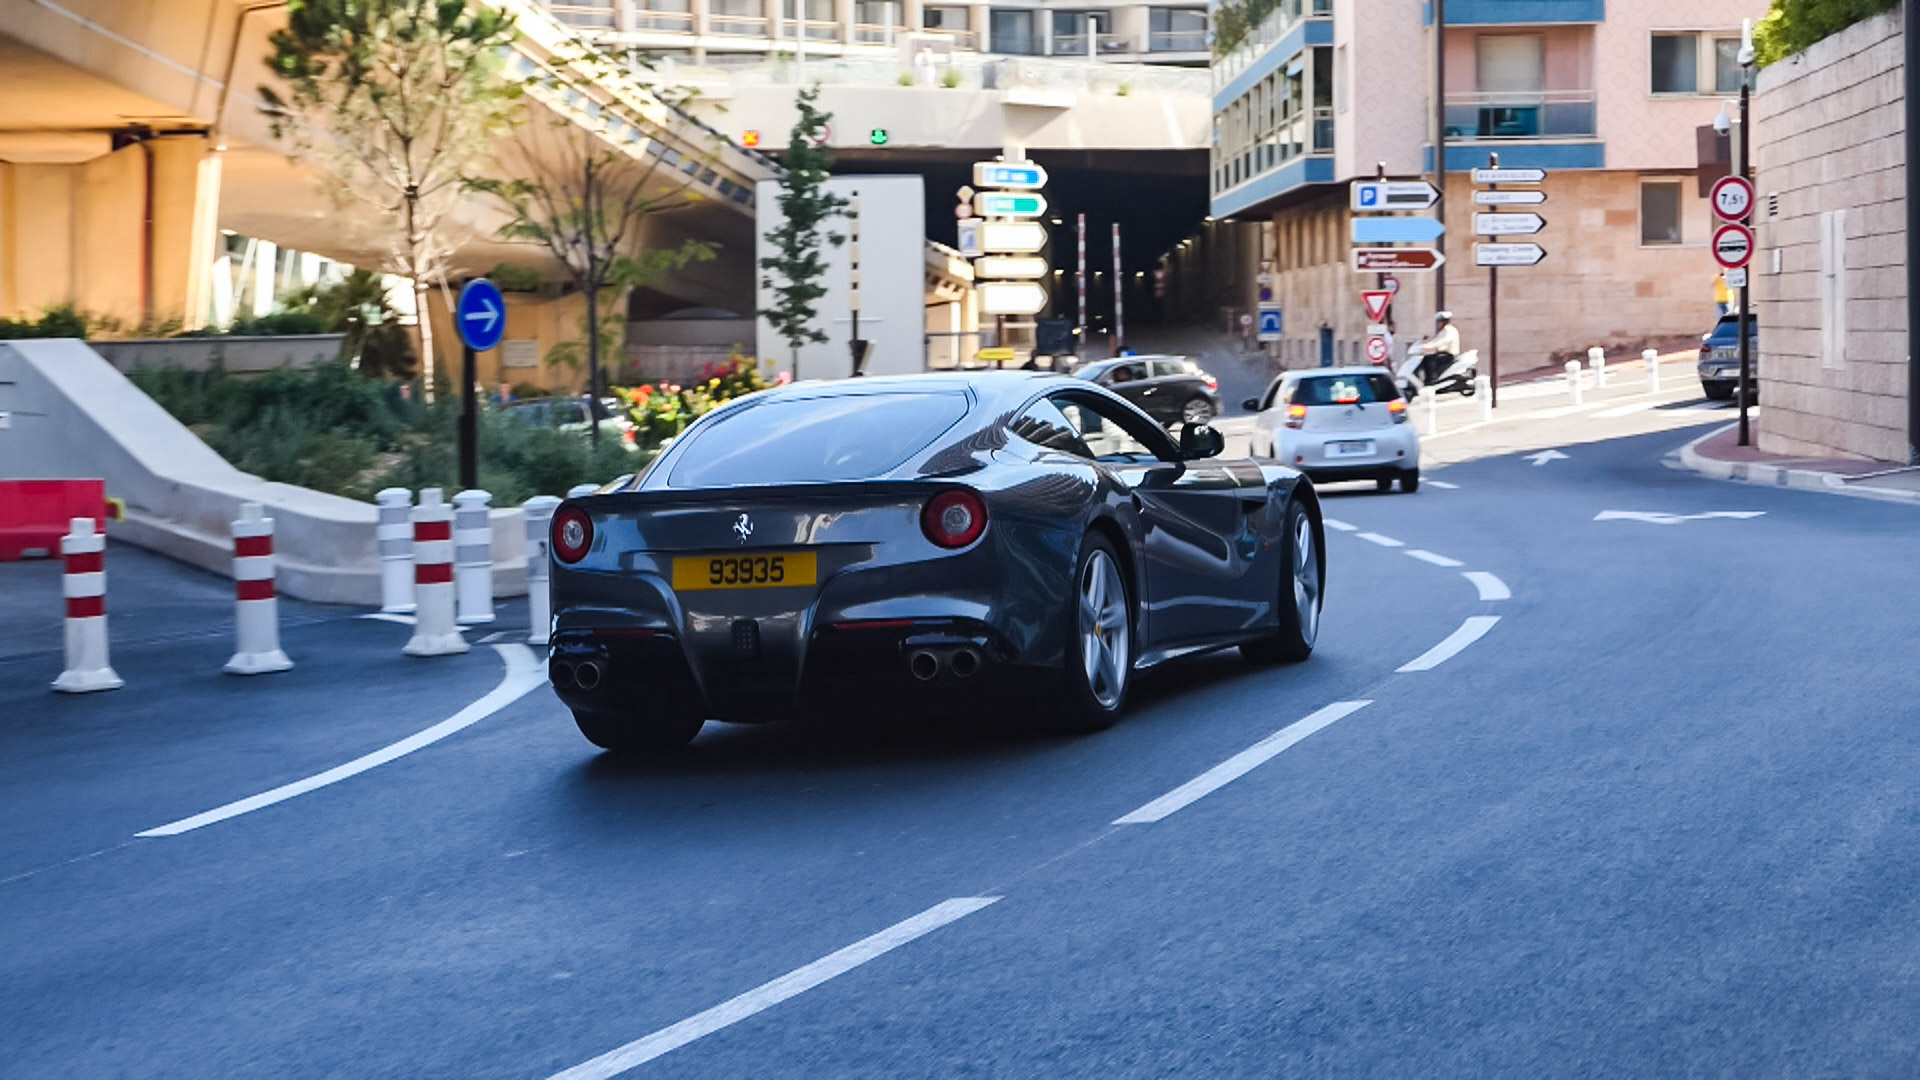 Ferrari F12 Berlinetta - 93935 (GB)